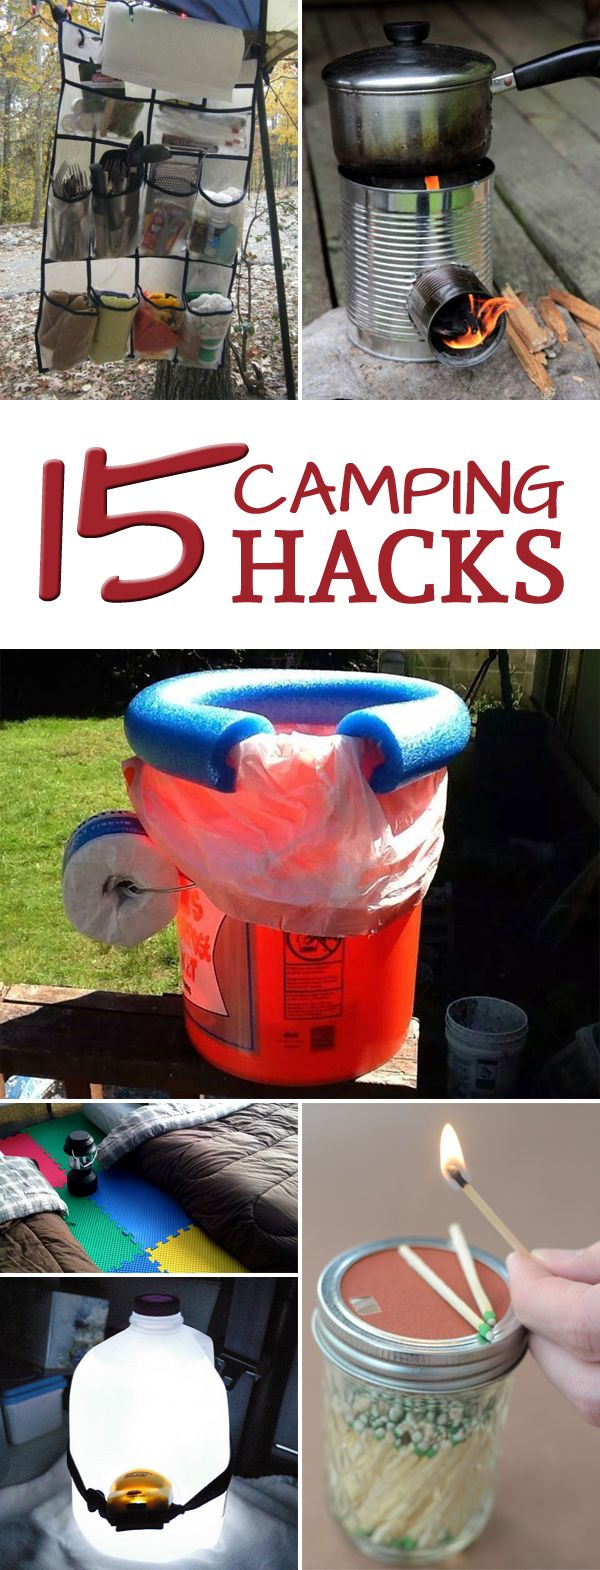 Here are some tips and tricks to make your next camping trip easier and more enjoyable.